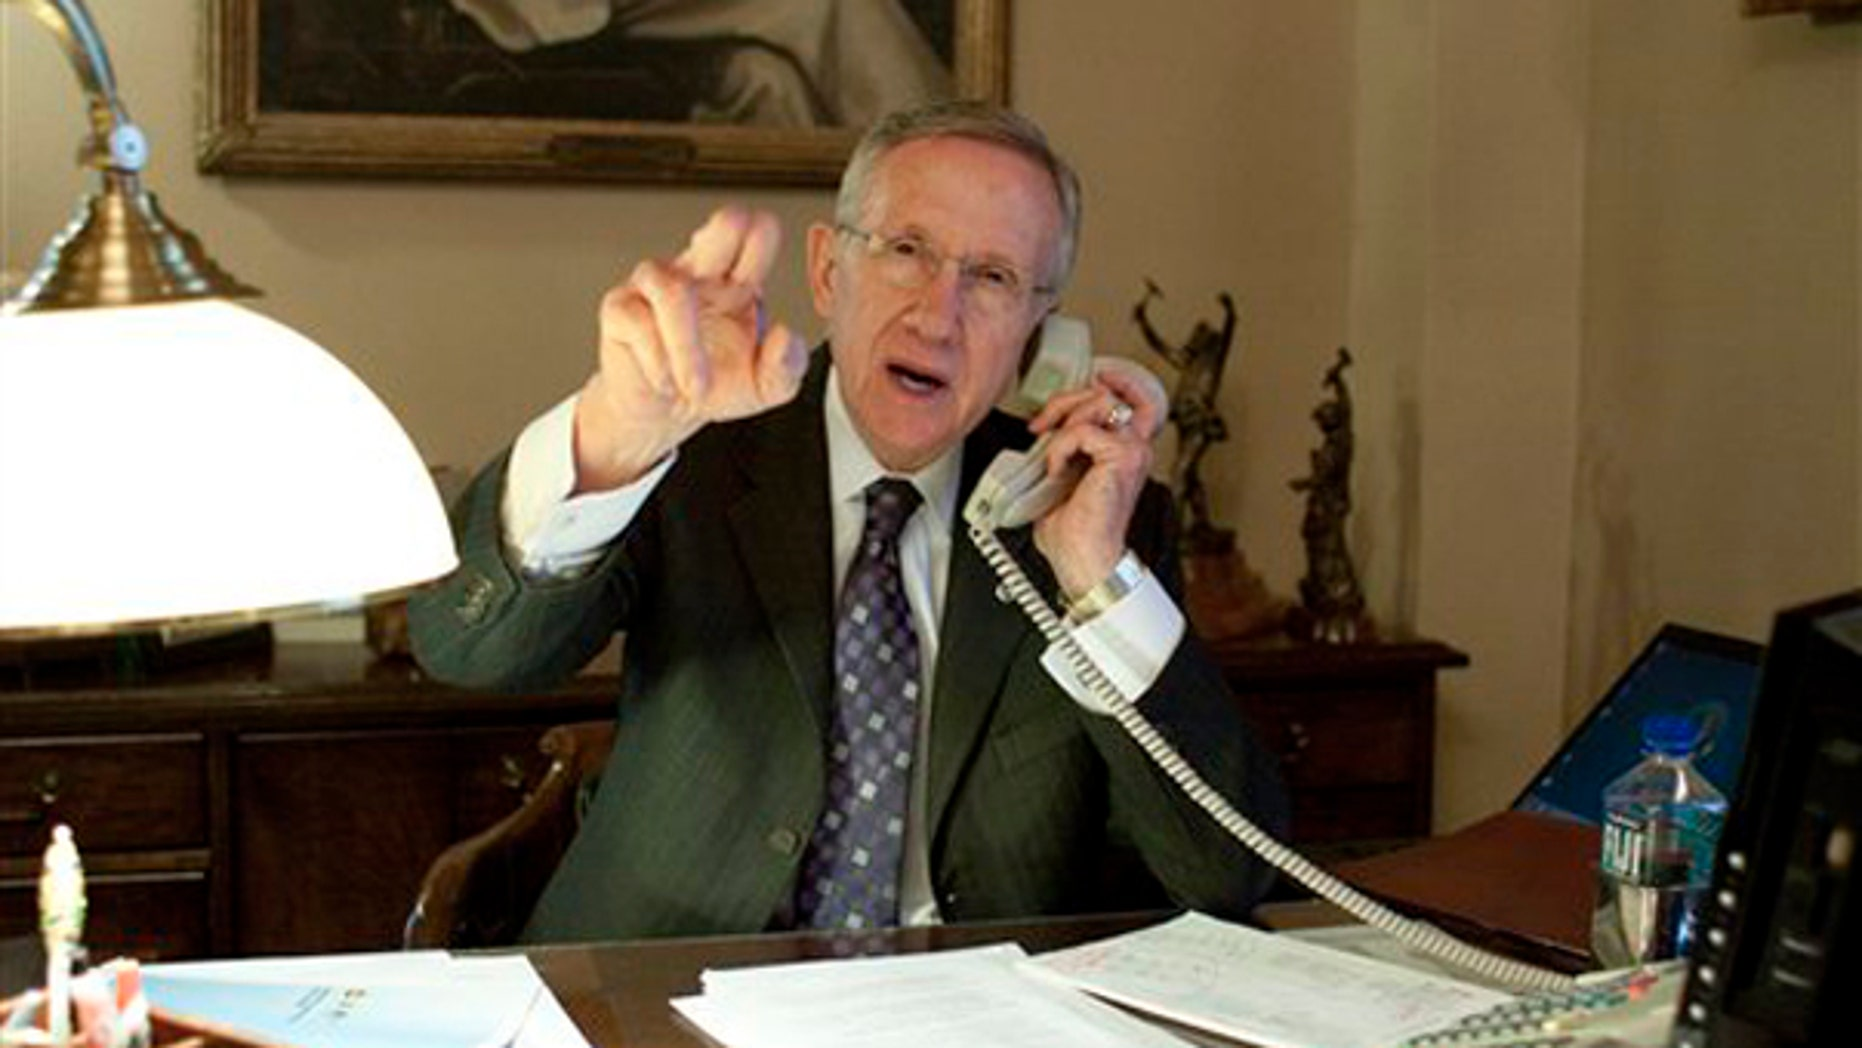 Senate Majority Leader Harry Reid, D-Nev., gestures as he takes a call in his office prior to the jobs bill cloture vote on Capitol Hill in Washington, Monday, Feb. 22, 2010. (AP)